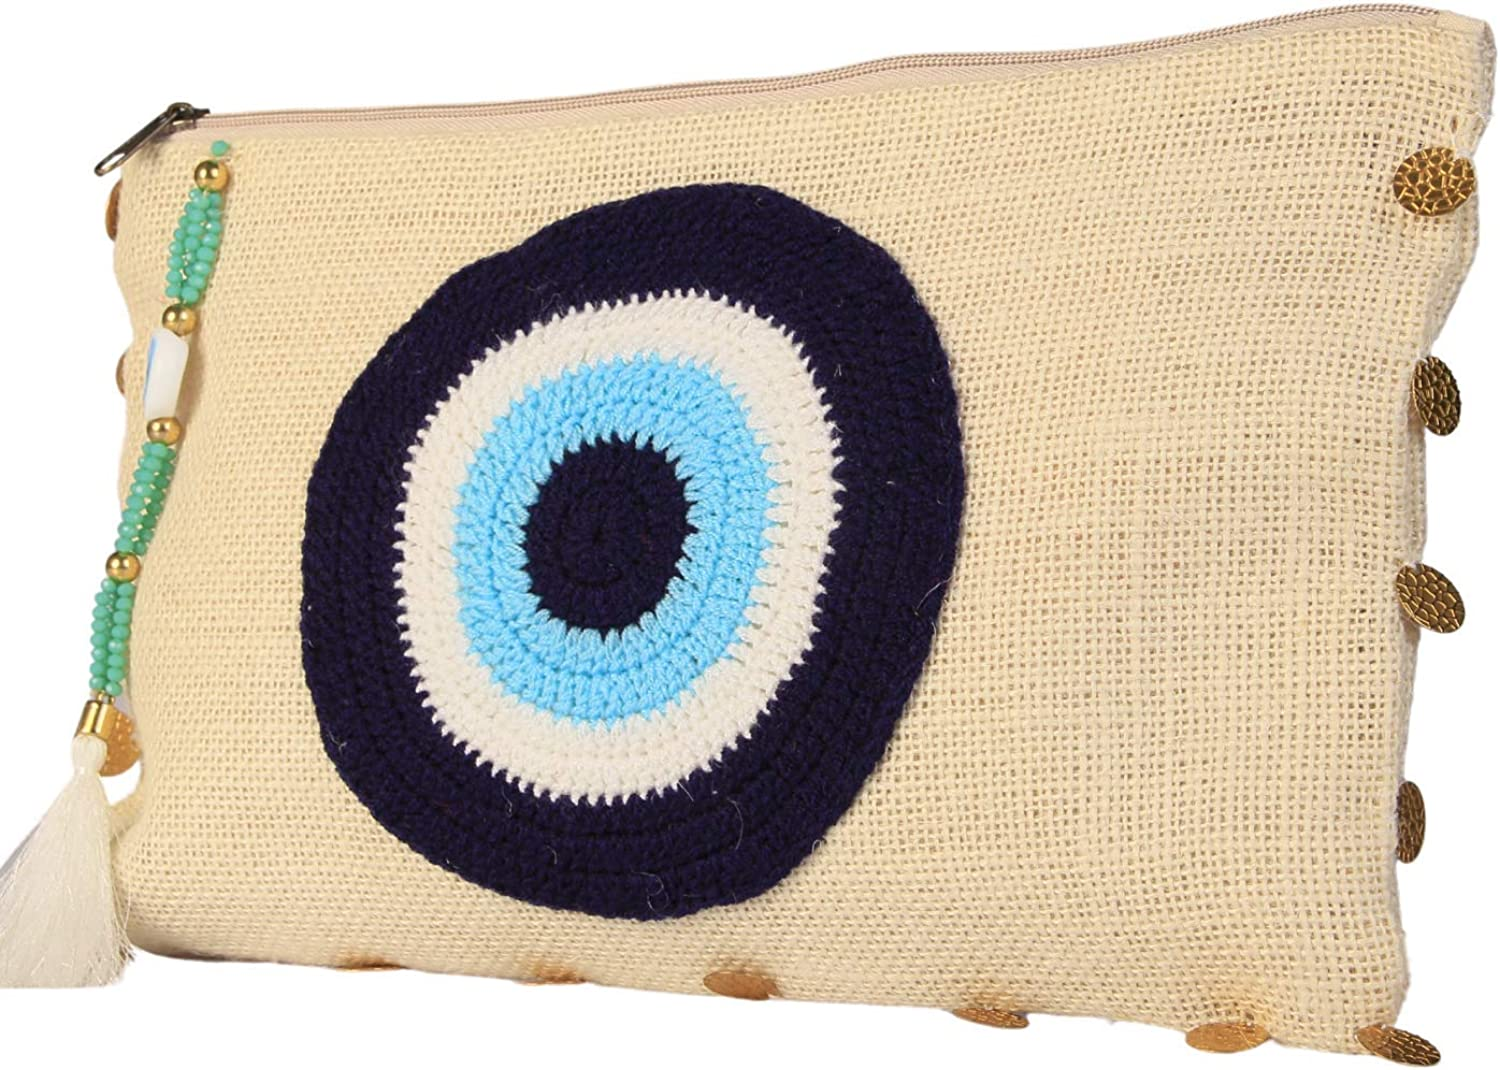 Karens Line Evil Eye Eco Friendly Jute Handheld Clutch Purse Large Space with Zipper Closure&Crystal Decoration Off-White&Gold